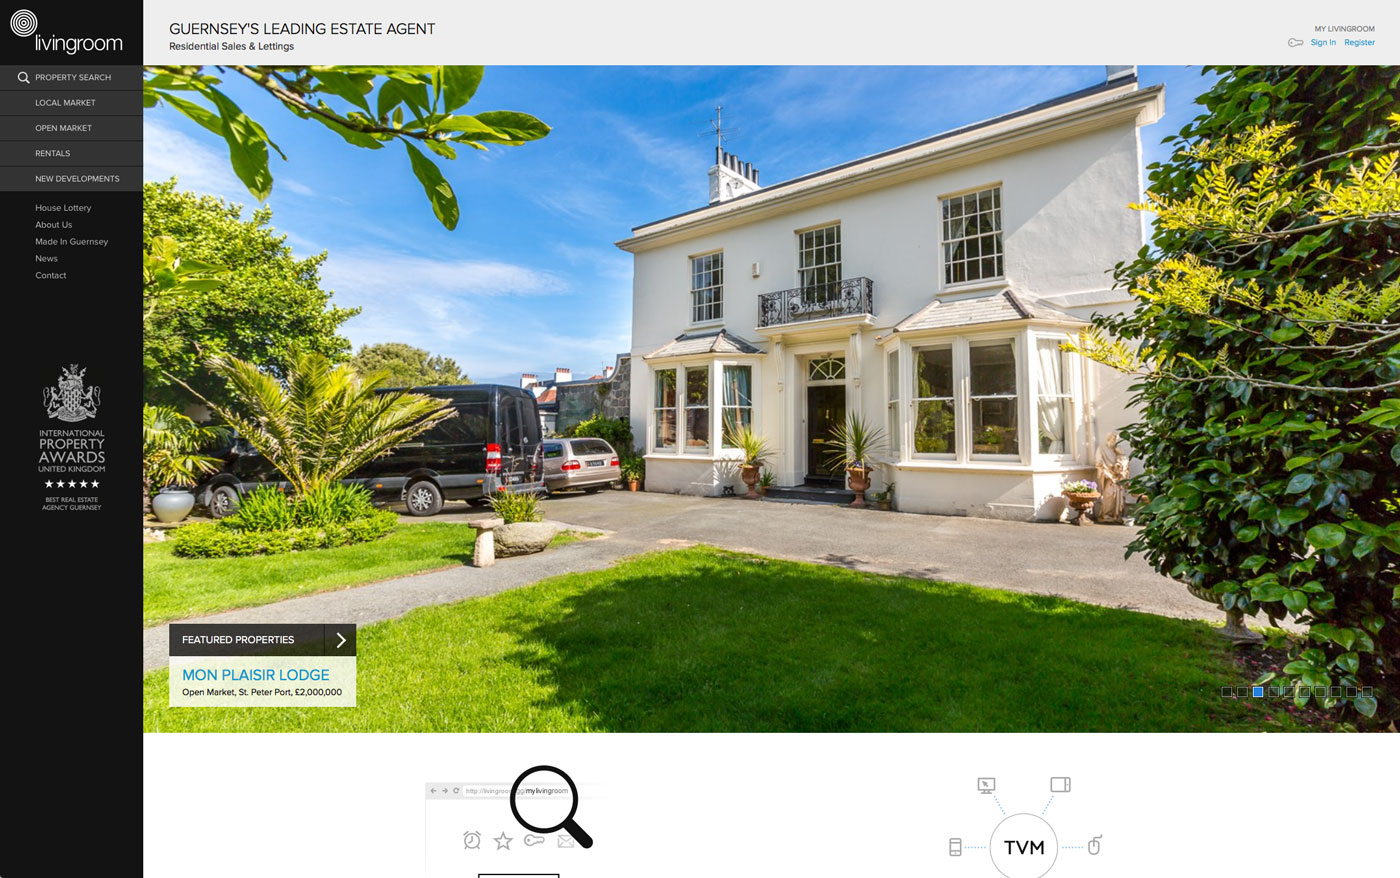 And Mobile Websites For Local Estate Agency Livingroom This Project Also Involved The Creation Of Bespoke Back End Property Management CRM Systems